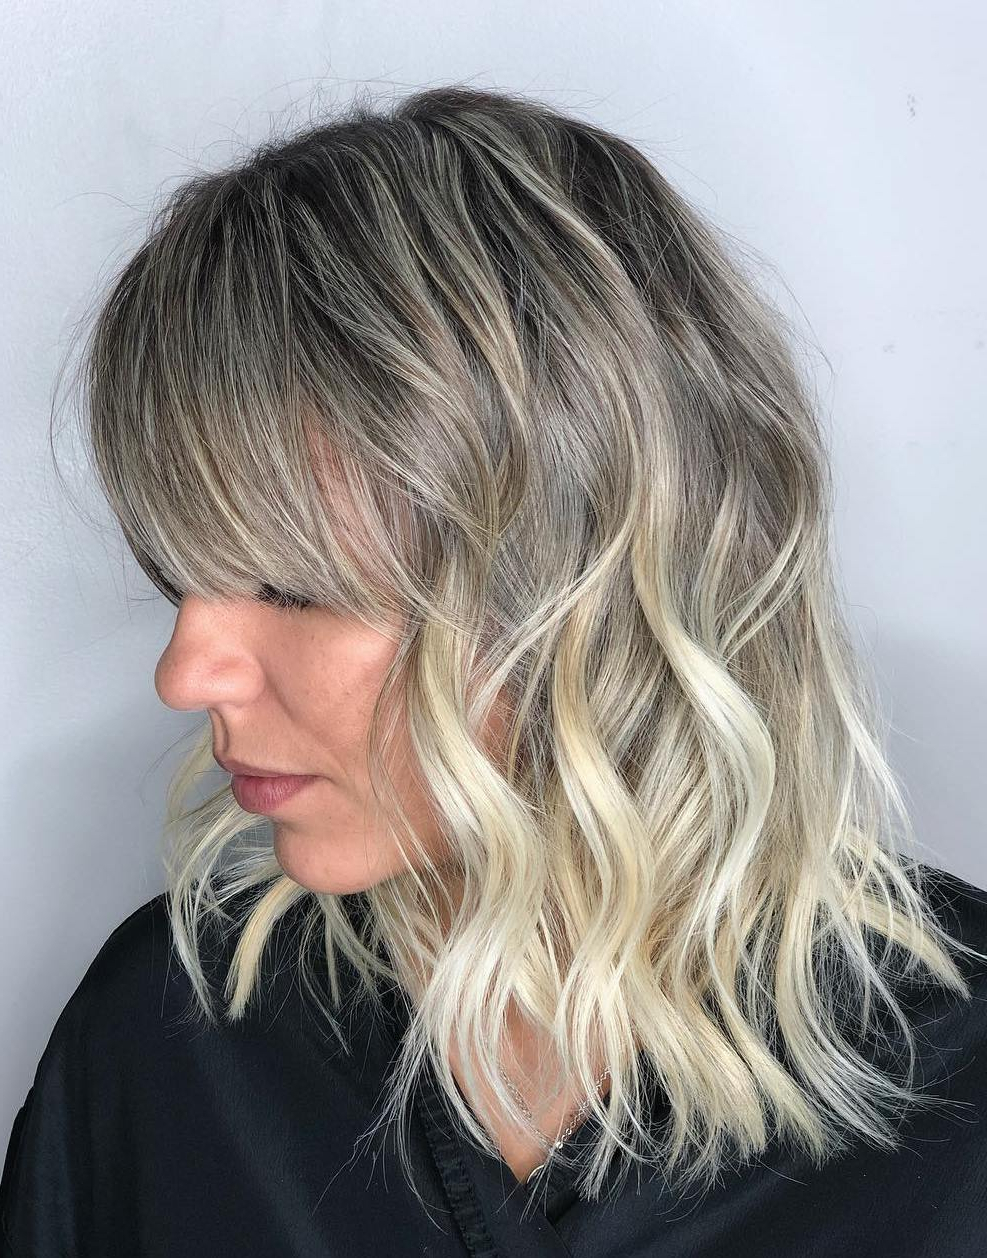 50 Head Turning Hairstyles For Thin Hair To Flaunt In 2019 Pertaining To Well Known Parisian Shag Haircuts For Thin Hair (View 11 of 20)